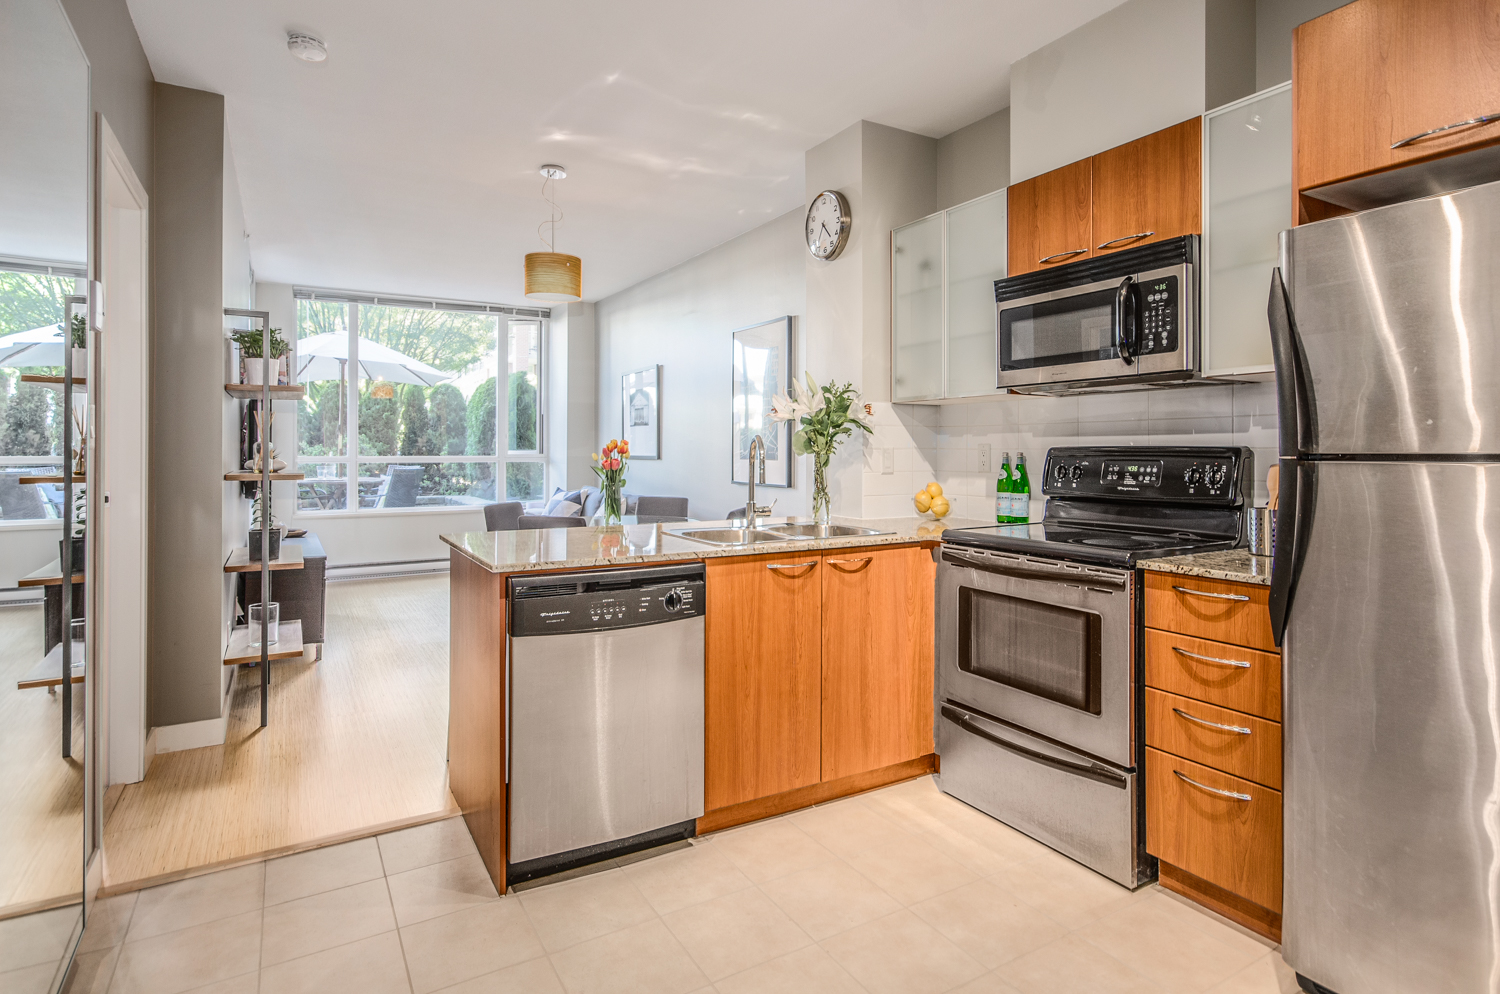 #308 – 4078 KNIGHT STREET, $2000/month, Available September 1